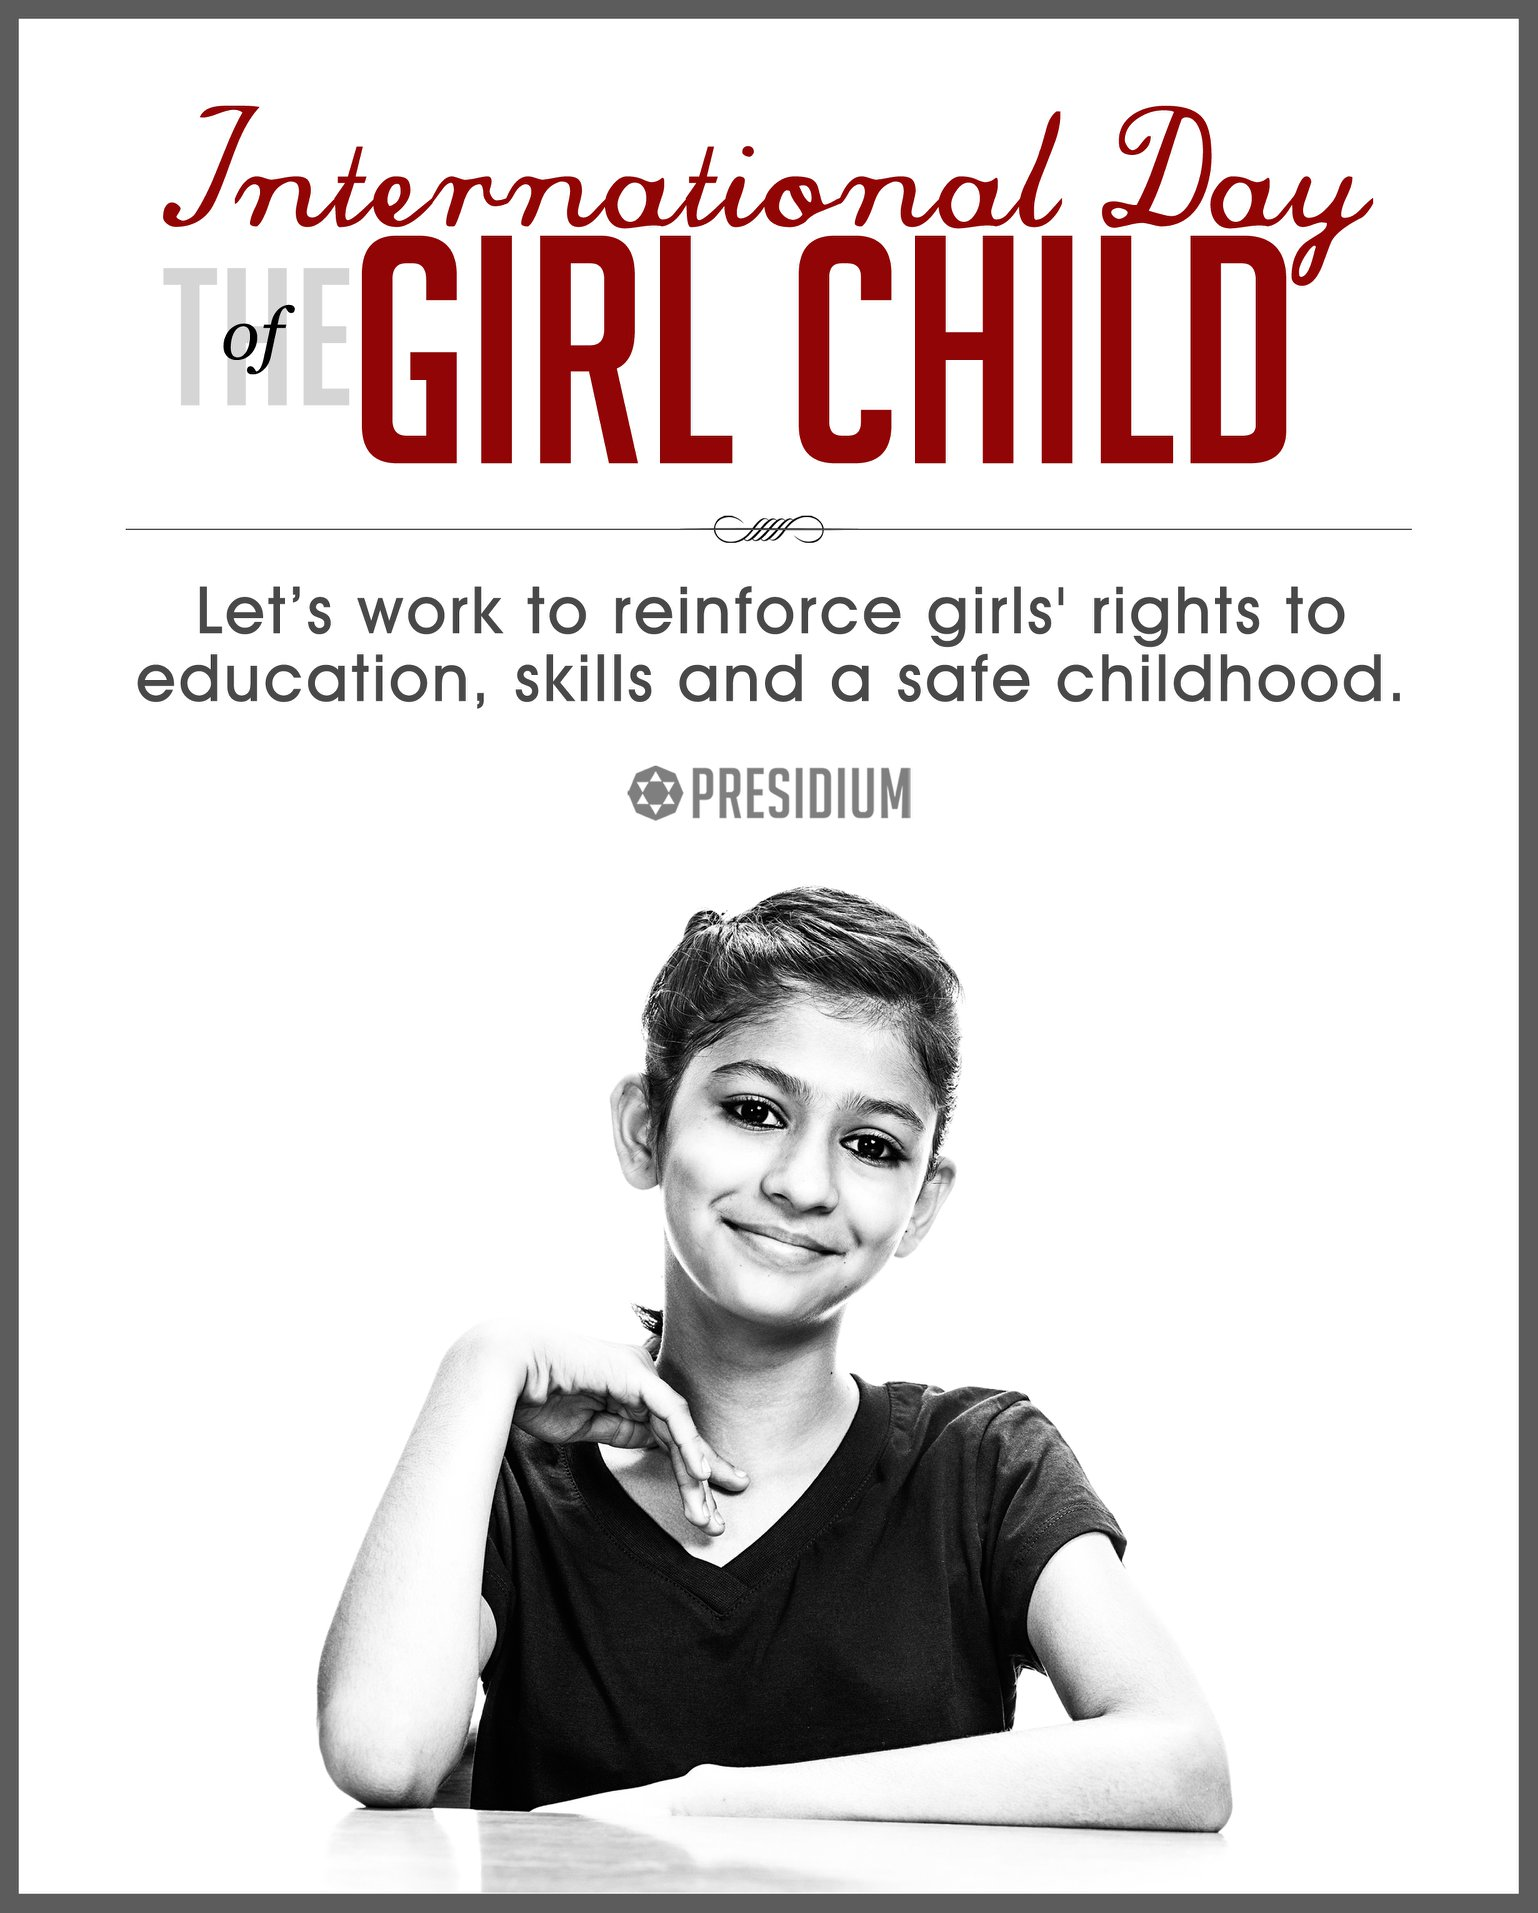 GIRL CHILD DAY: GIRLS OF TODAY ARE THE LEADERS OF TOMORROW